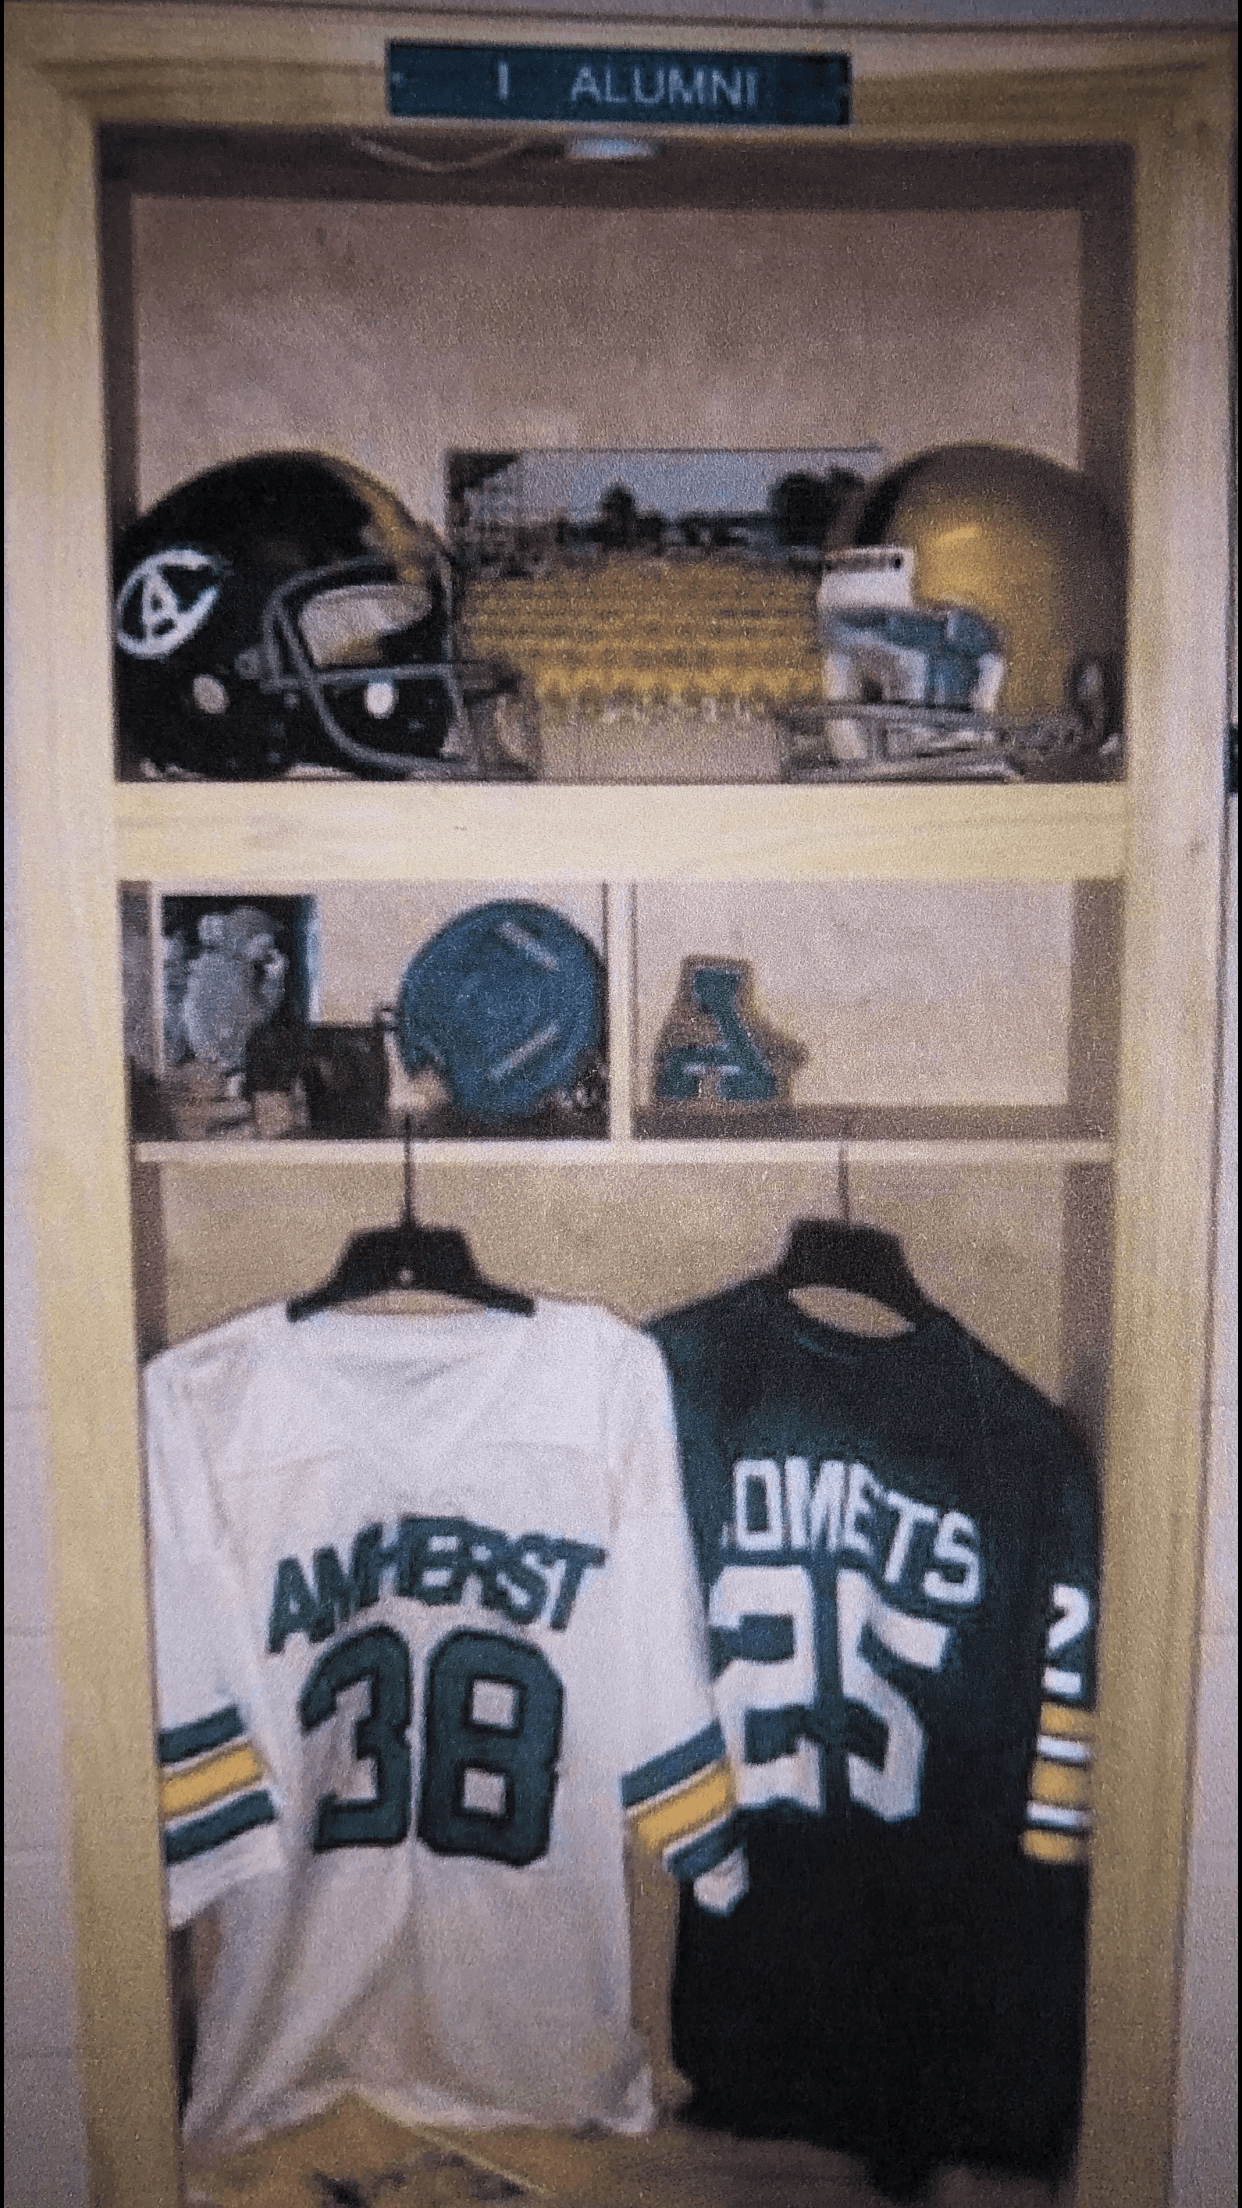 Alumni Lockers